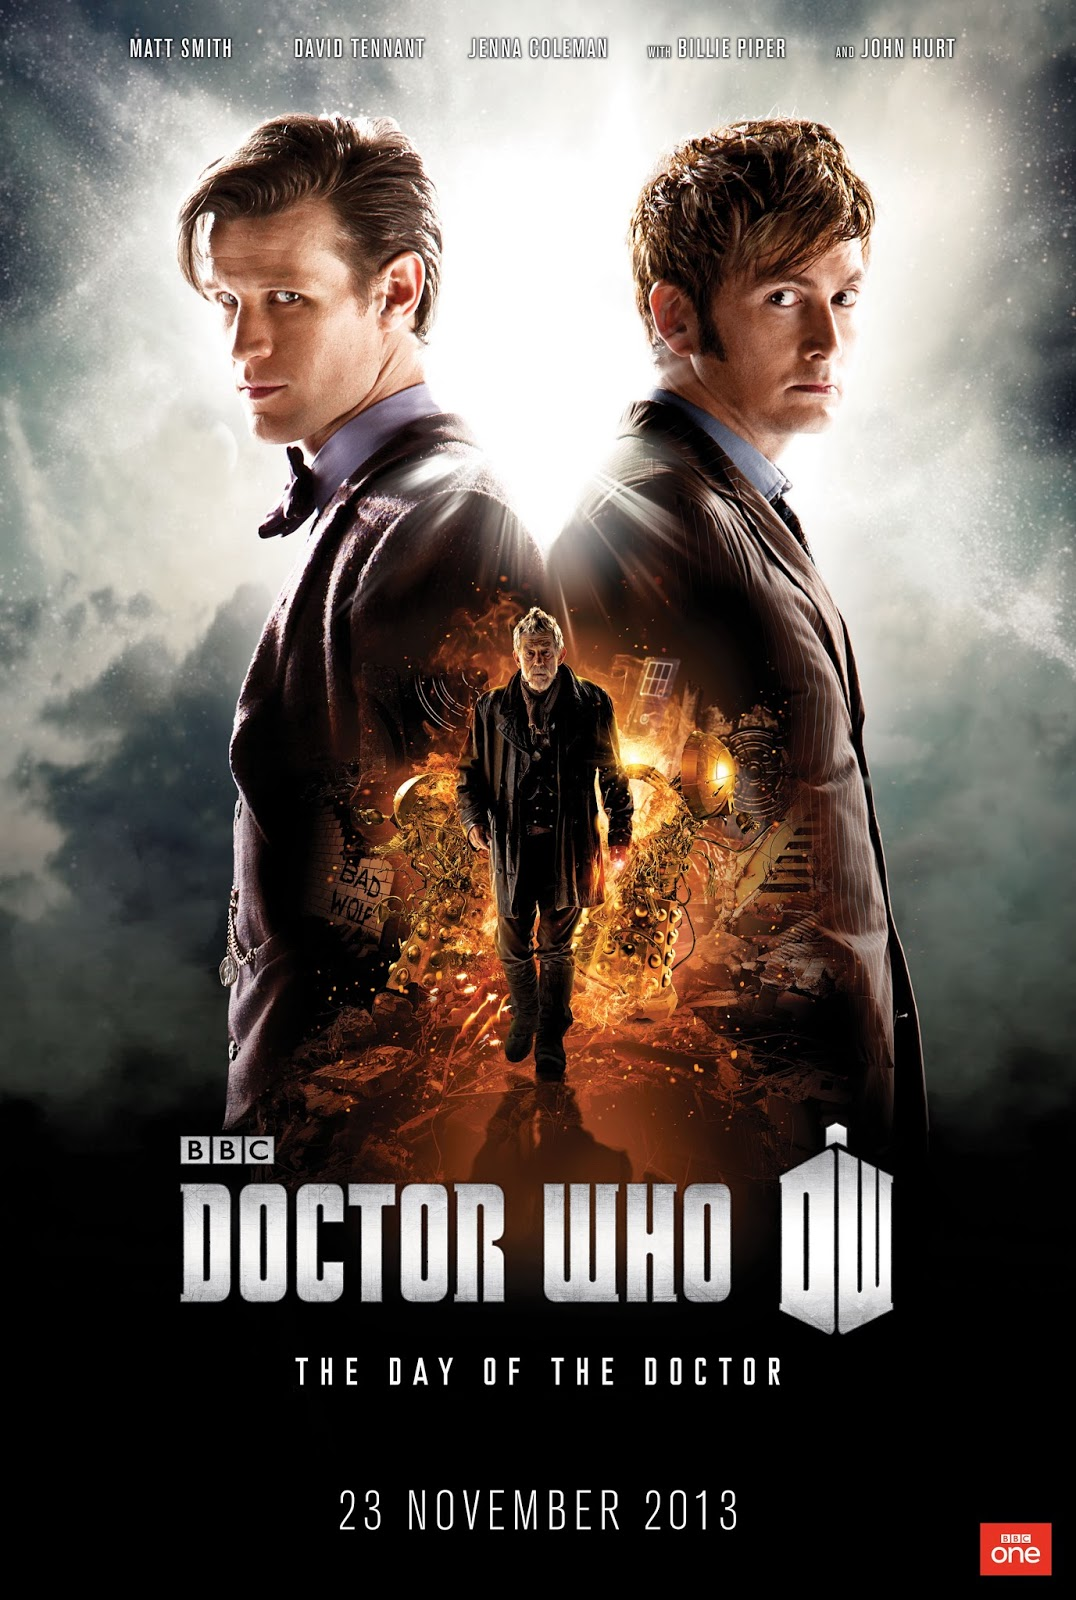 The Birthday of the Doctor: A look at the 50th Anniversary Special